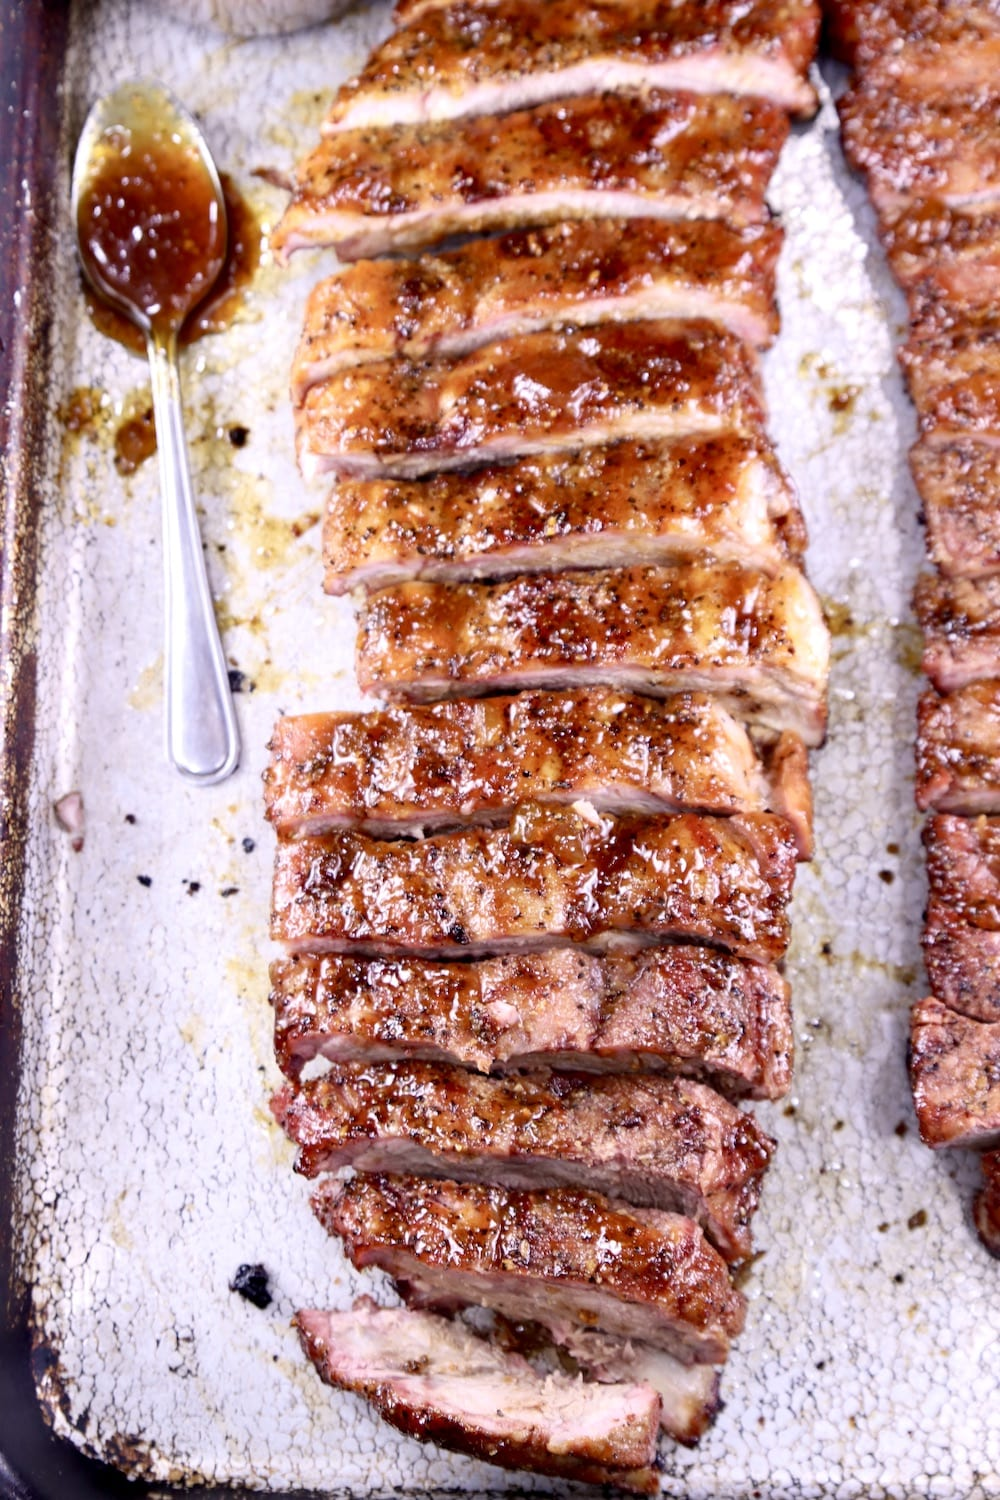 Pan with bbq ribs and spoon of sauce